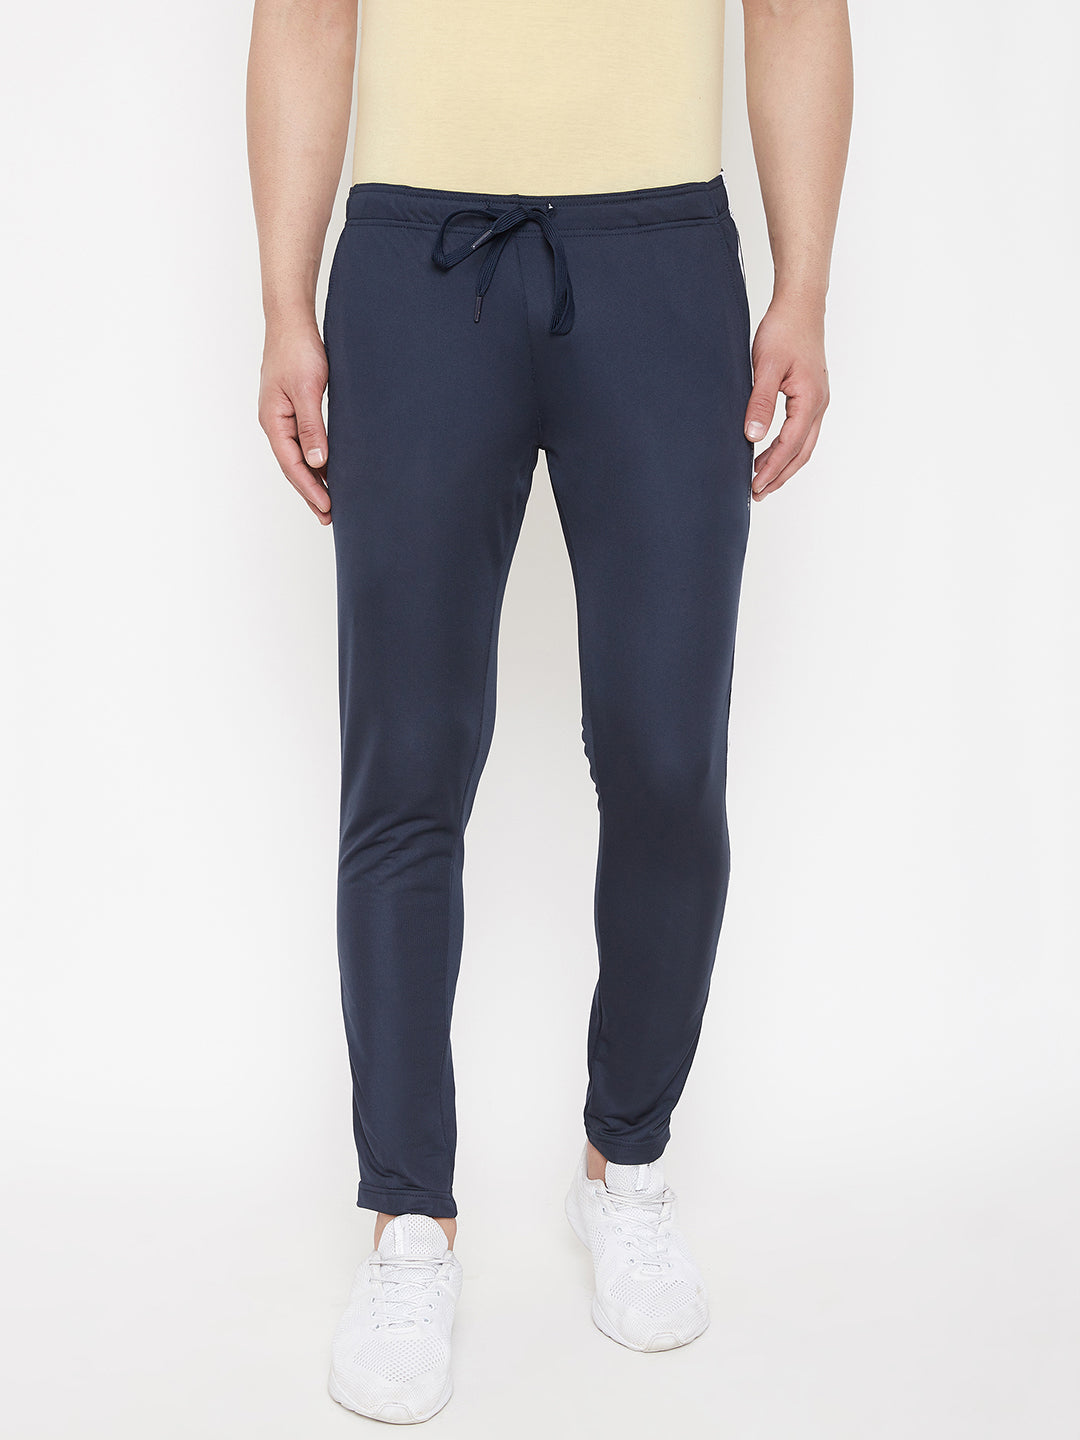 JUMP USA Men Navy Blue Solid Track Pant - JUMP USA